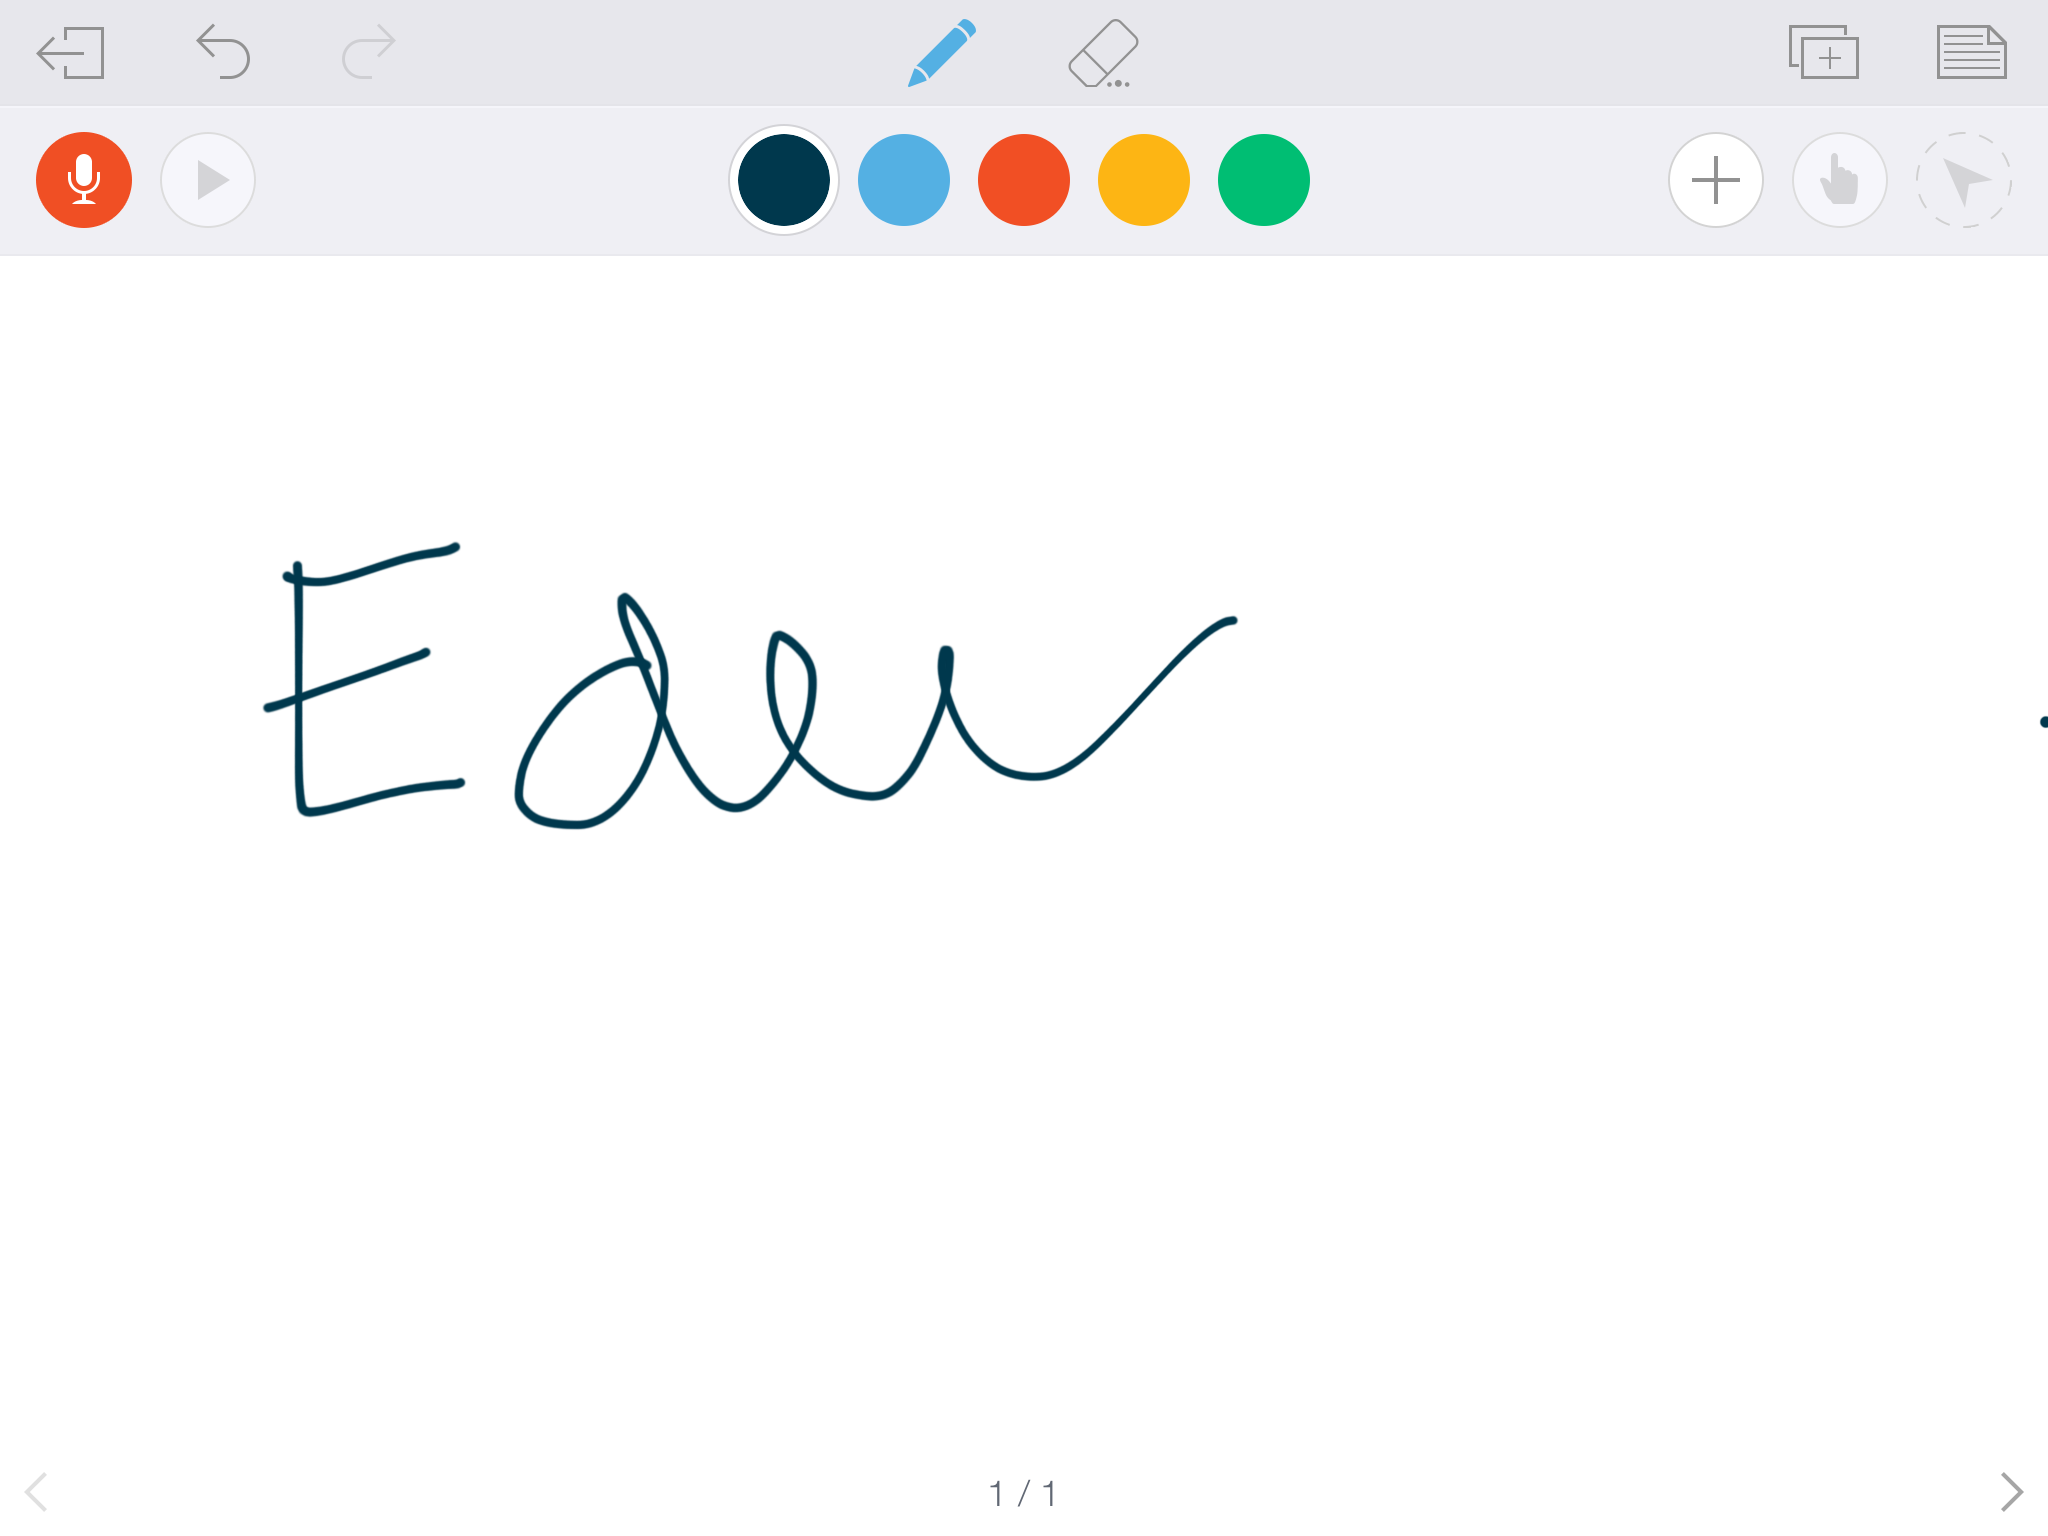 File:Educreations Editor png - Wikimedia Commons